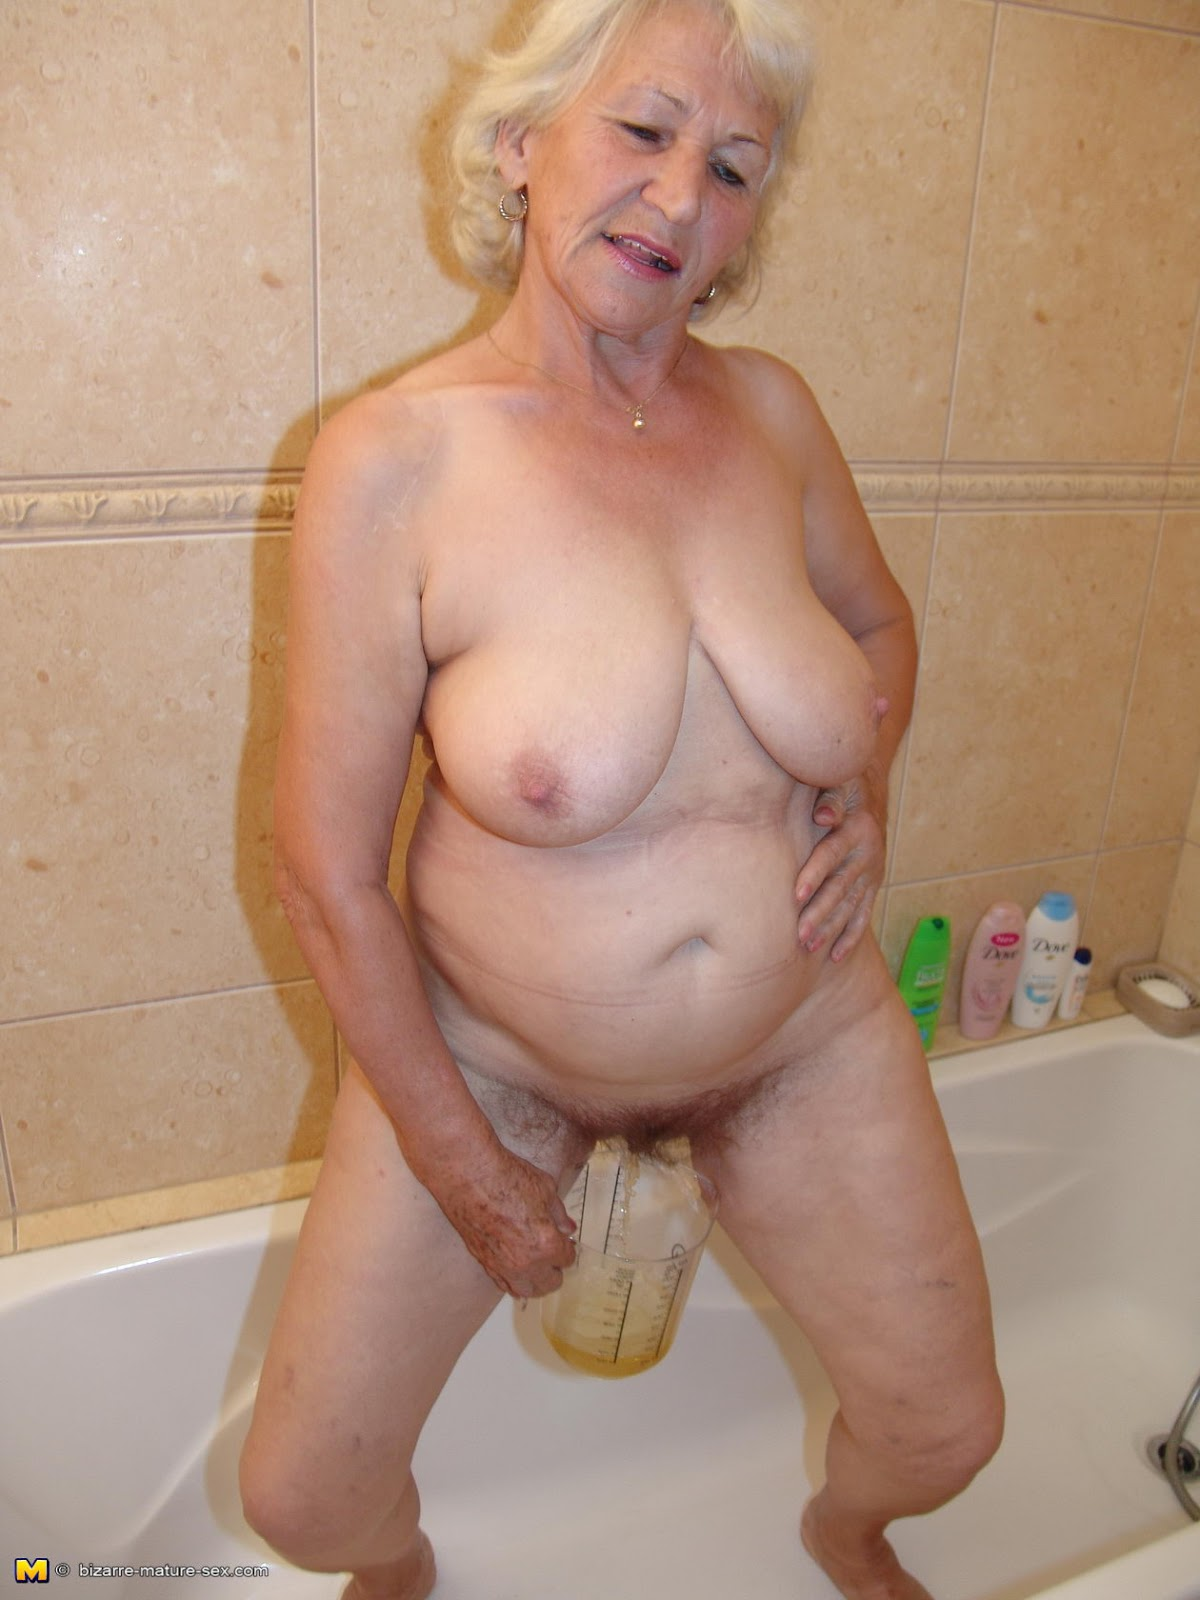 For that granny norma lesbian